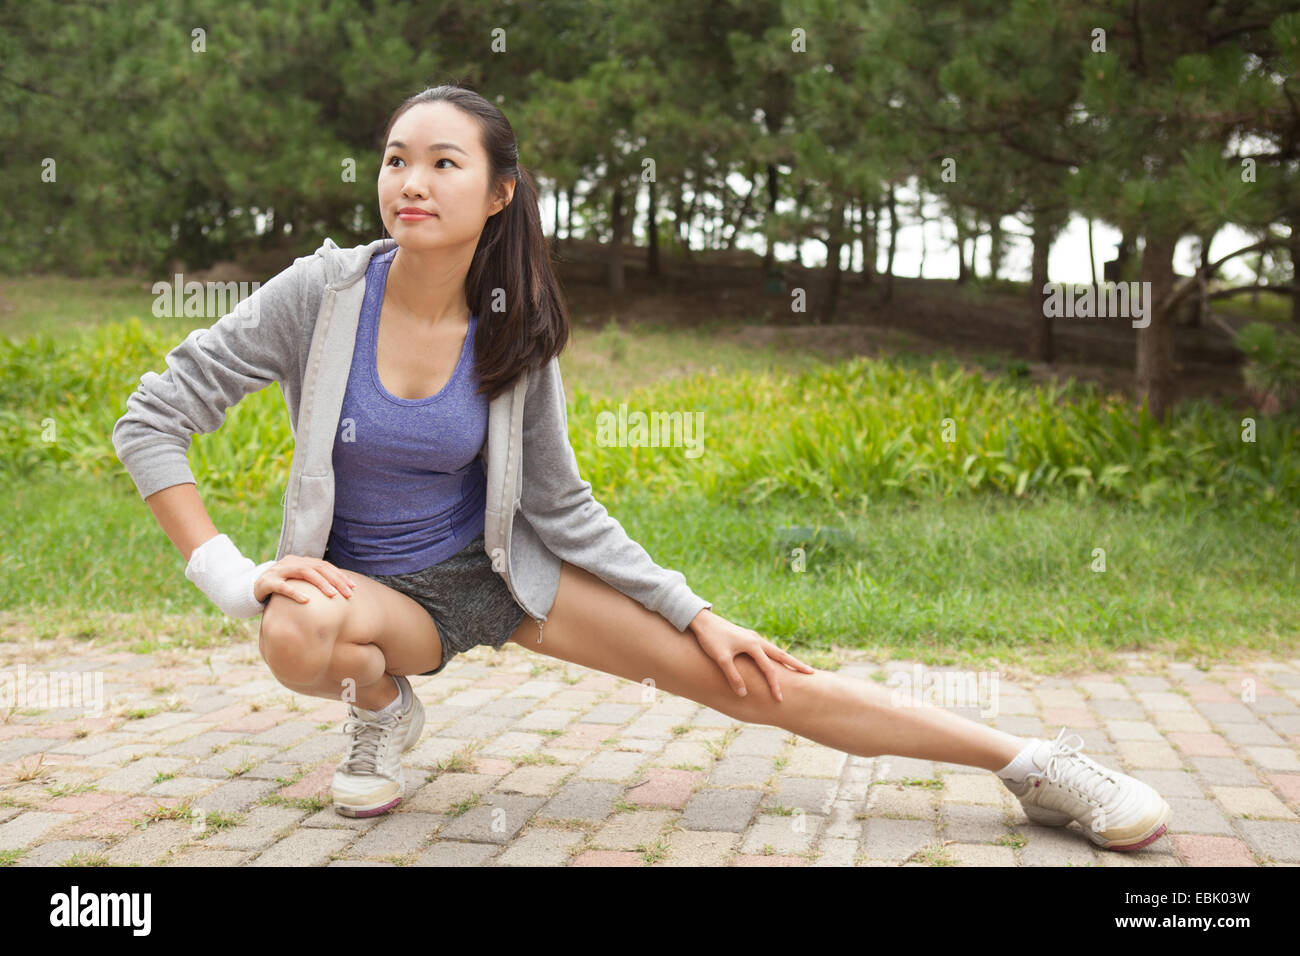 Young female runner stretching legs in park - Stock Image